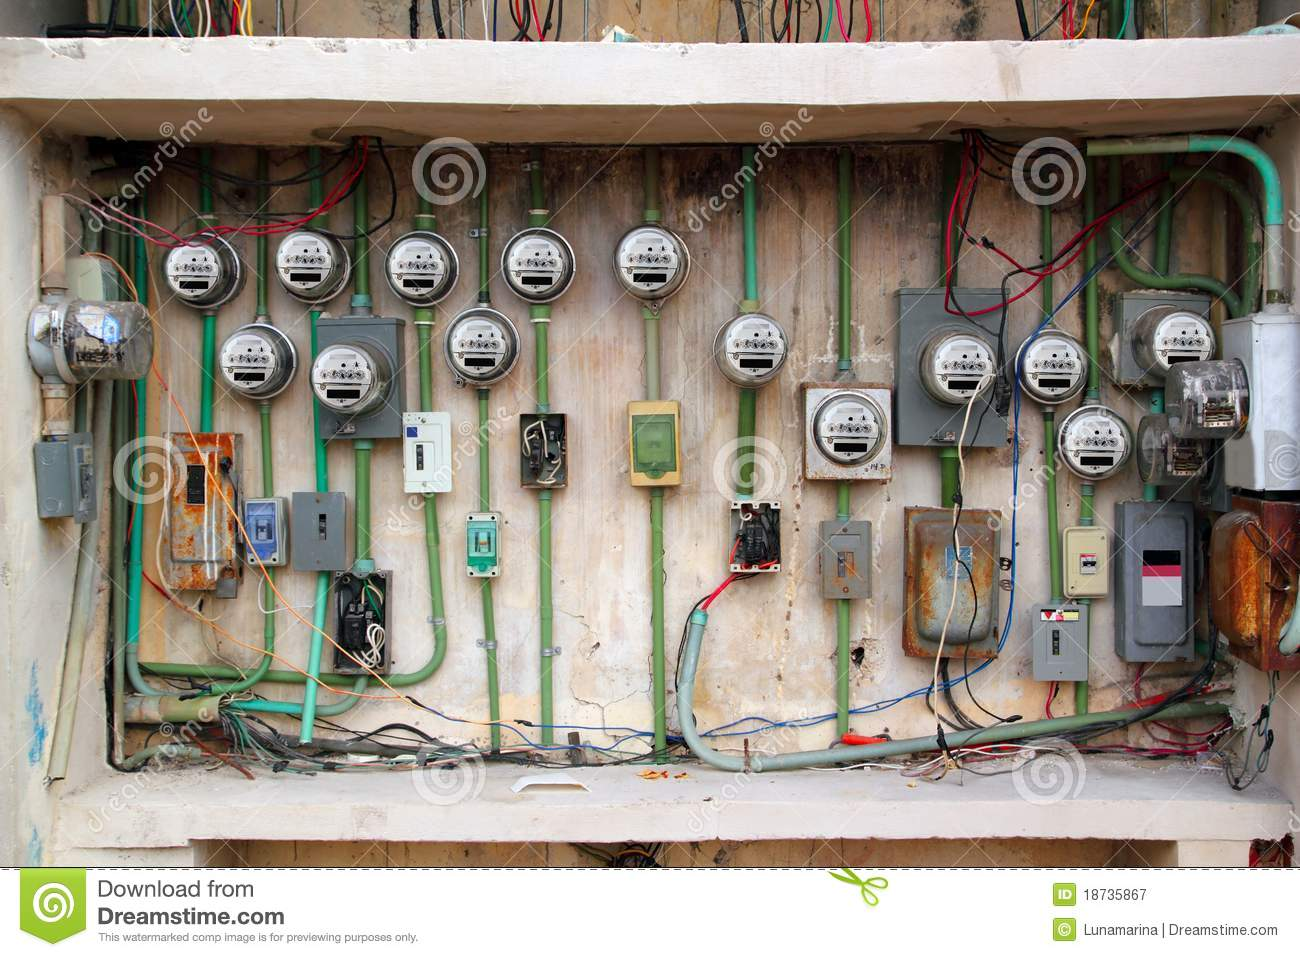 Install Utility Meters : Electric meter messy electrical installation stock image